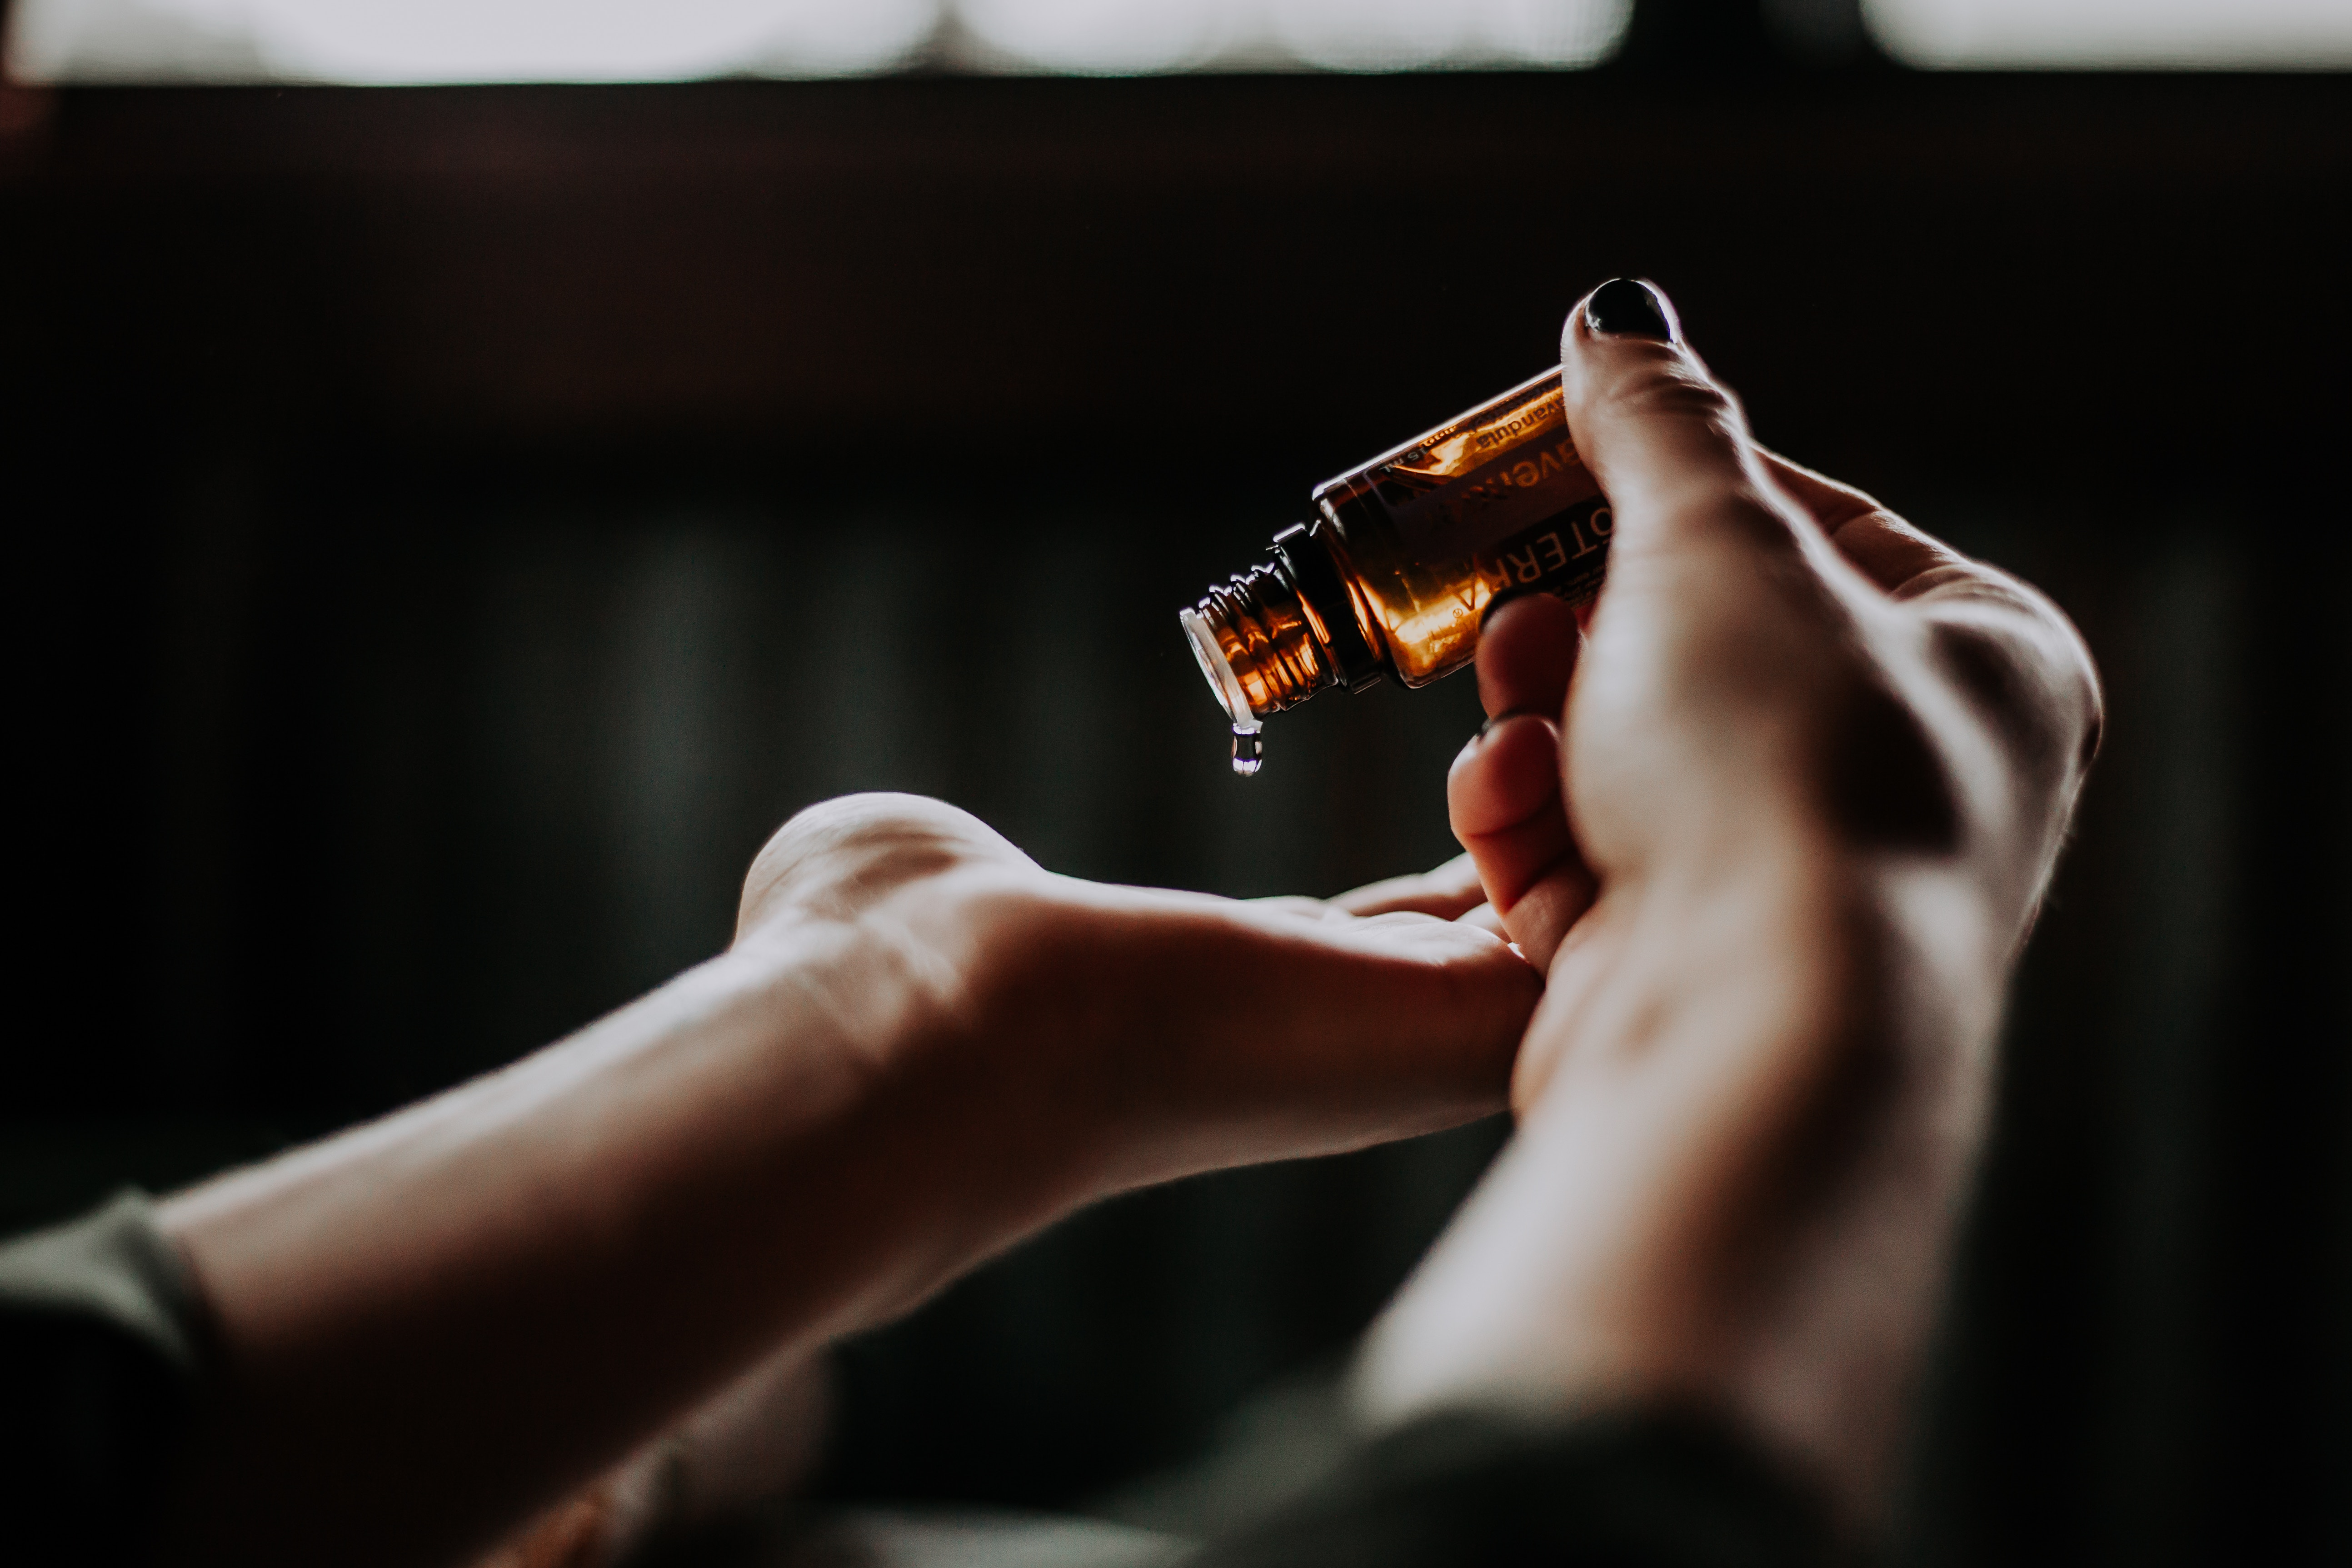 aromatherapy, antibacterial, antifungal, antiseptic, anxiety, tea tree, fungus, depression, diffuse, plant extract, tea tree oil, lavender oil, essential oils, lavender, wounds, sleep, stress